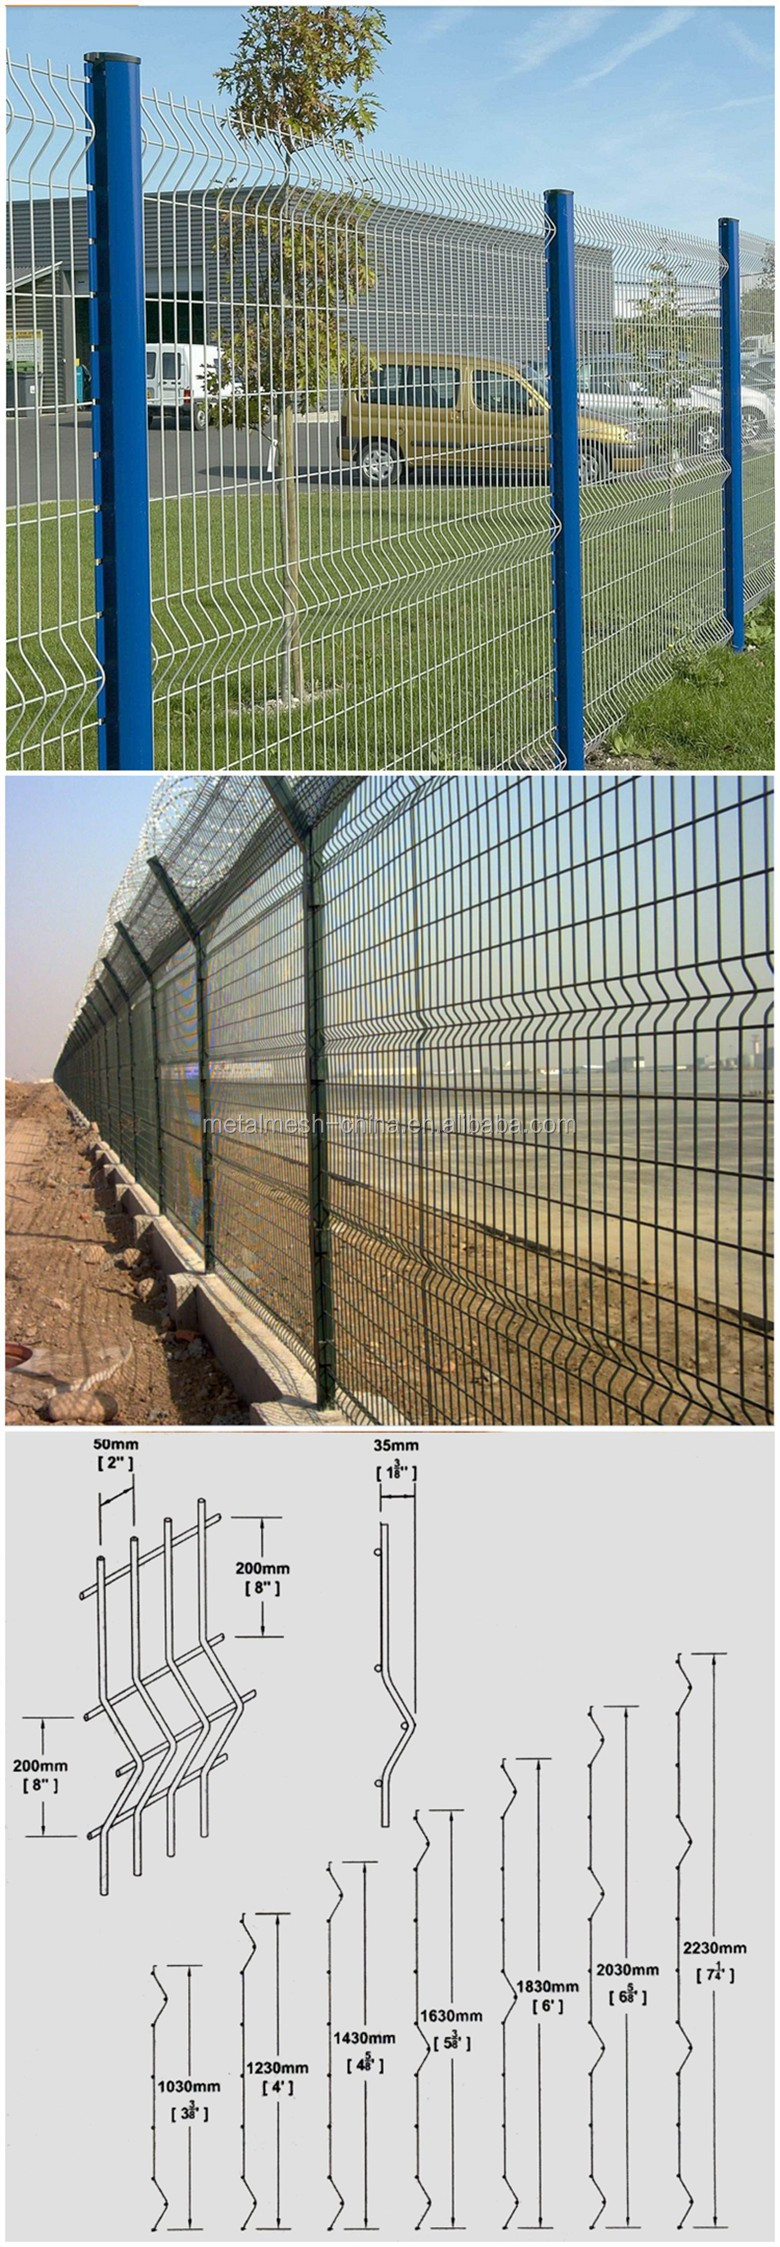 1/2-inch Welded Wire Mesh Fence/6ft Wire Mesh Fence/8x8 Fence Panels ...